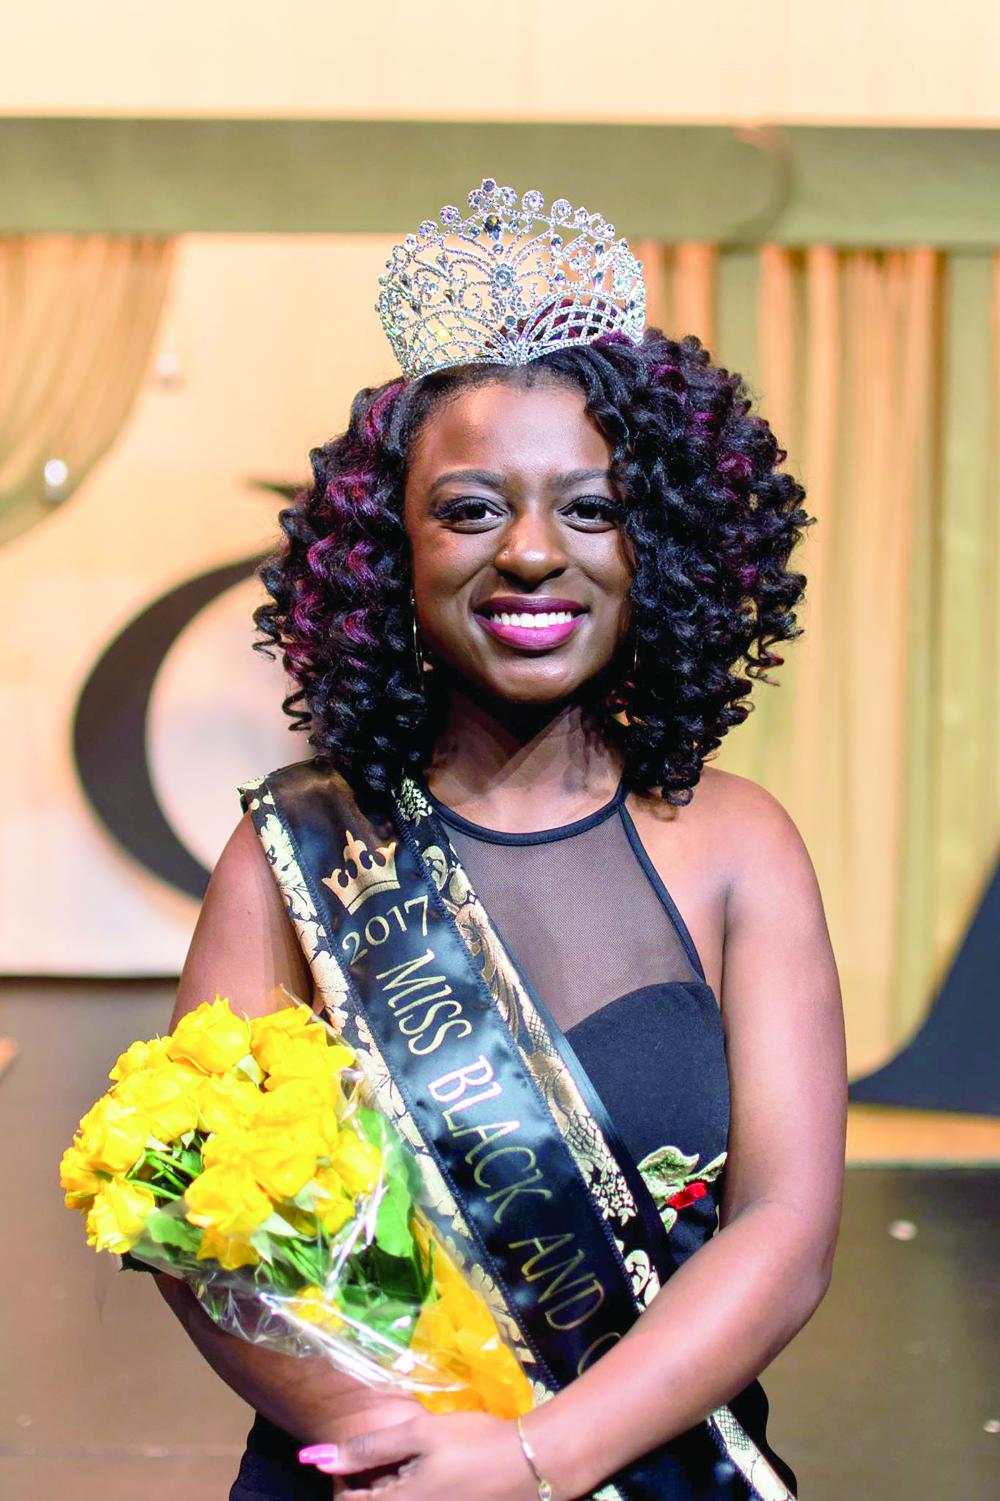 Sophomore Mia Riley was crowned queen of Miss Black and Gold 2017.